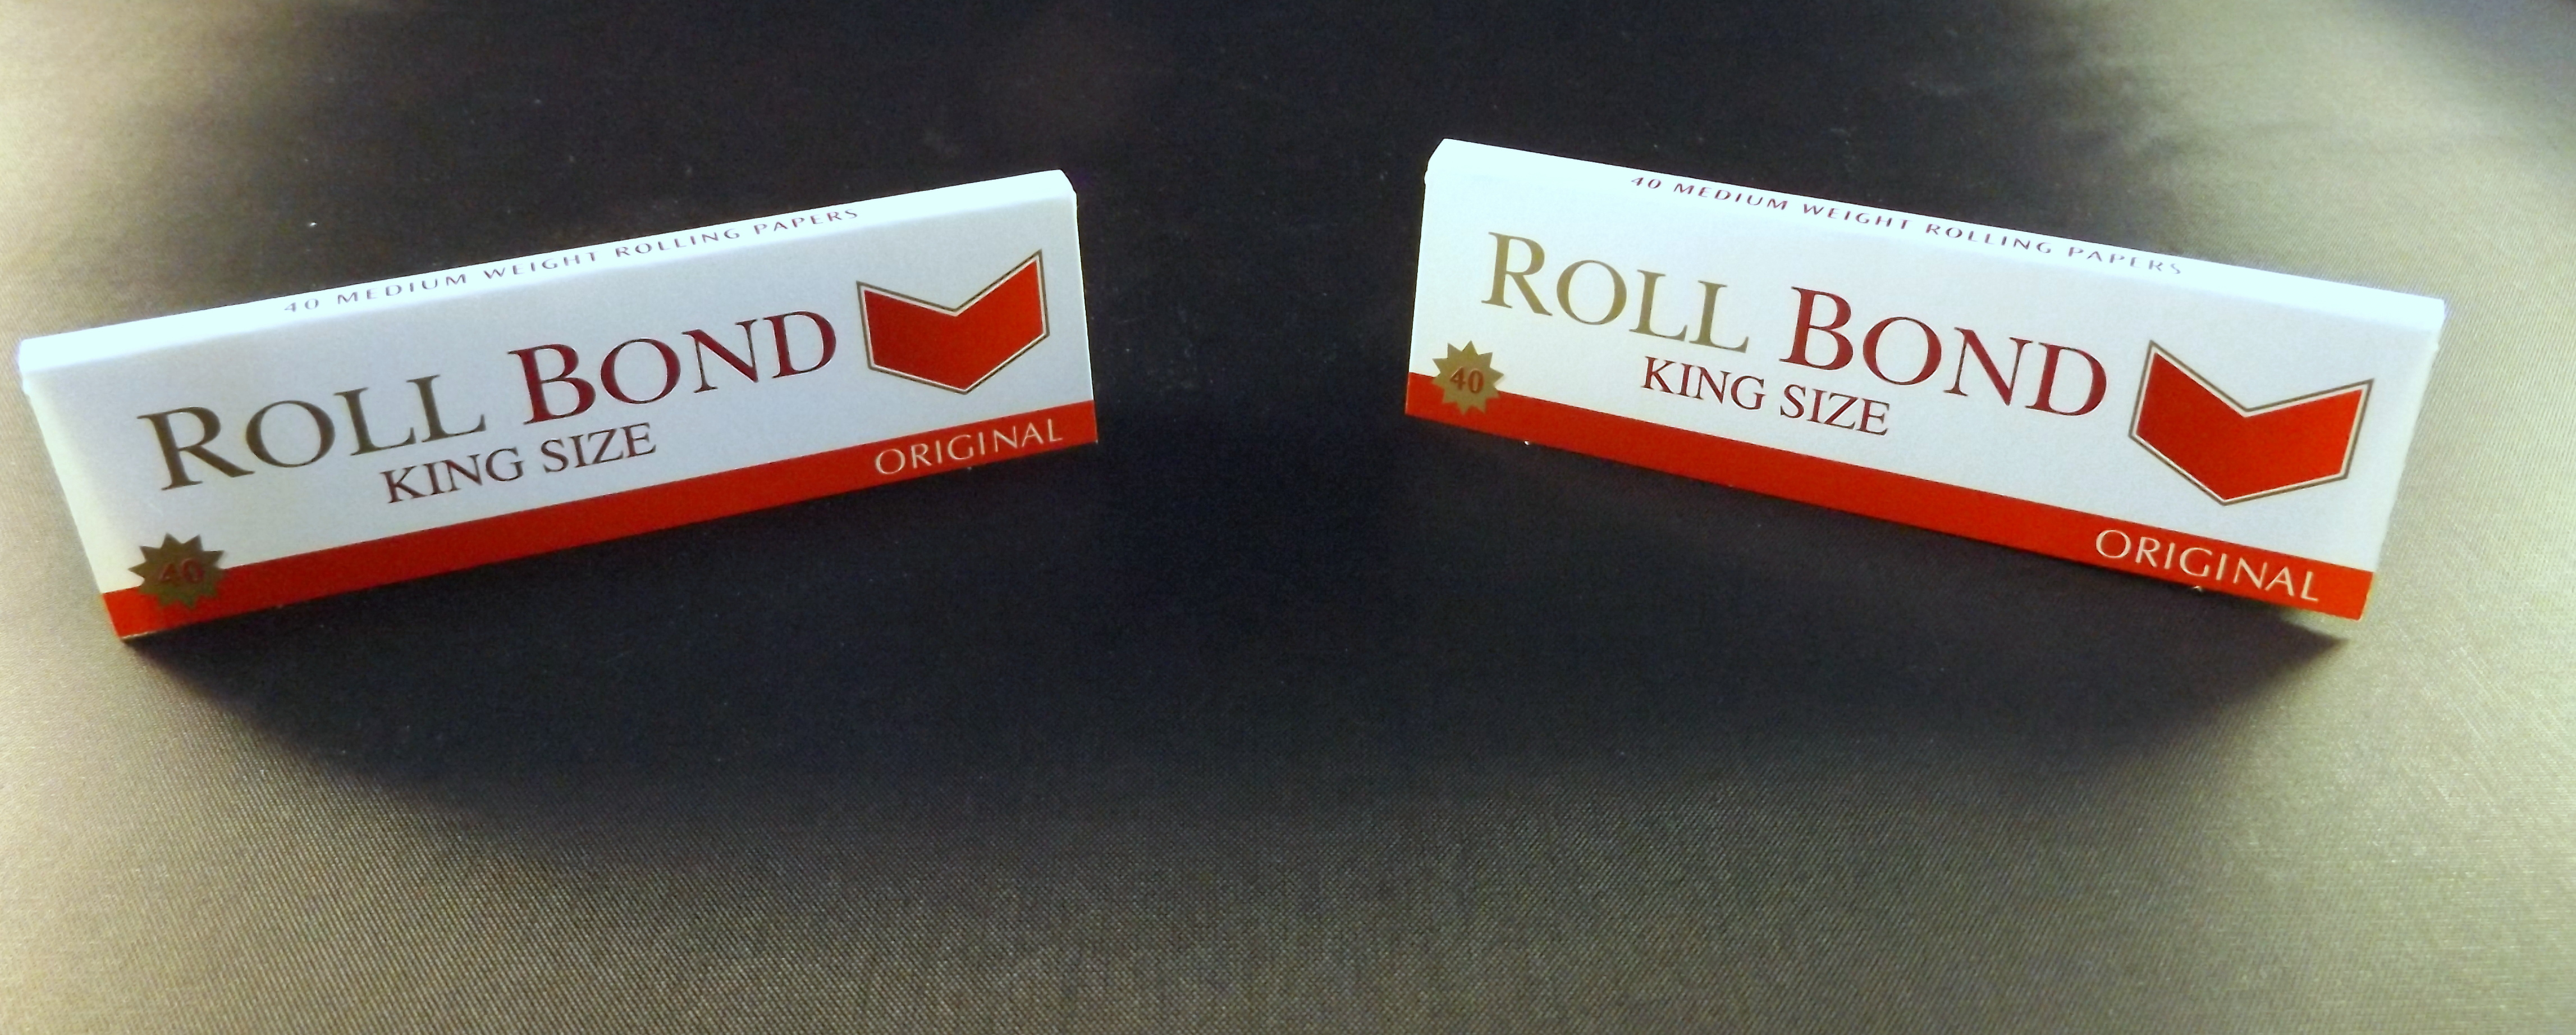 A ROLL BOND KING SIZE SLIM ROLLING PAPERS